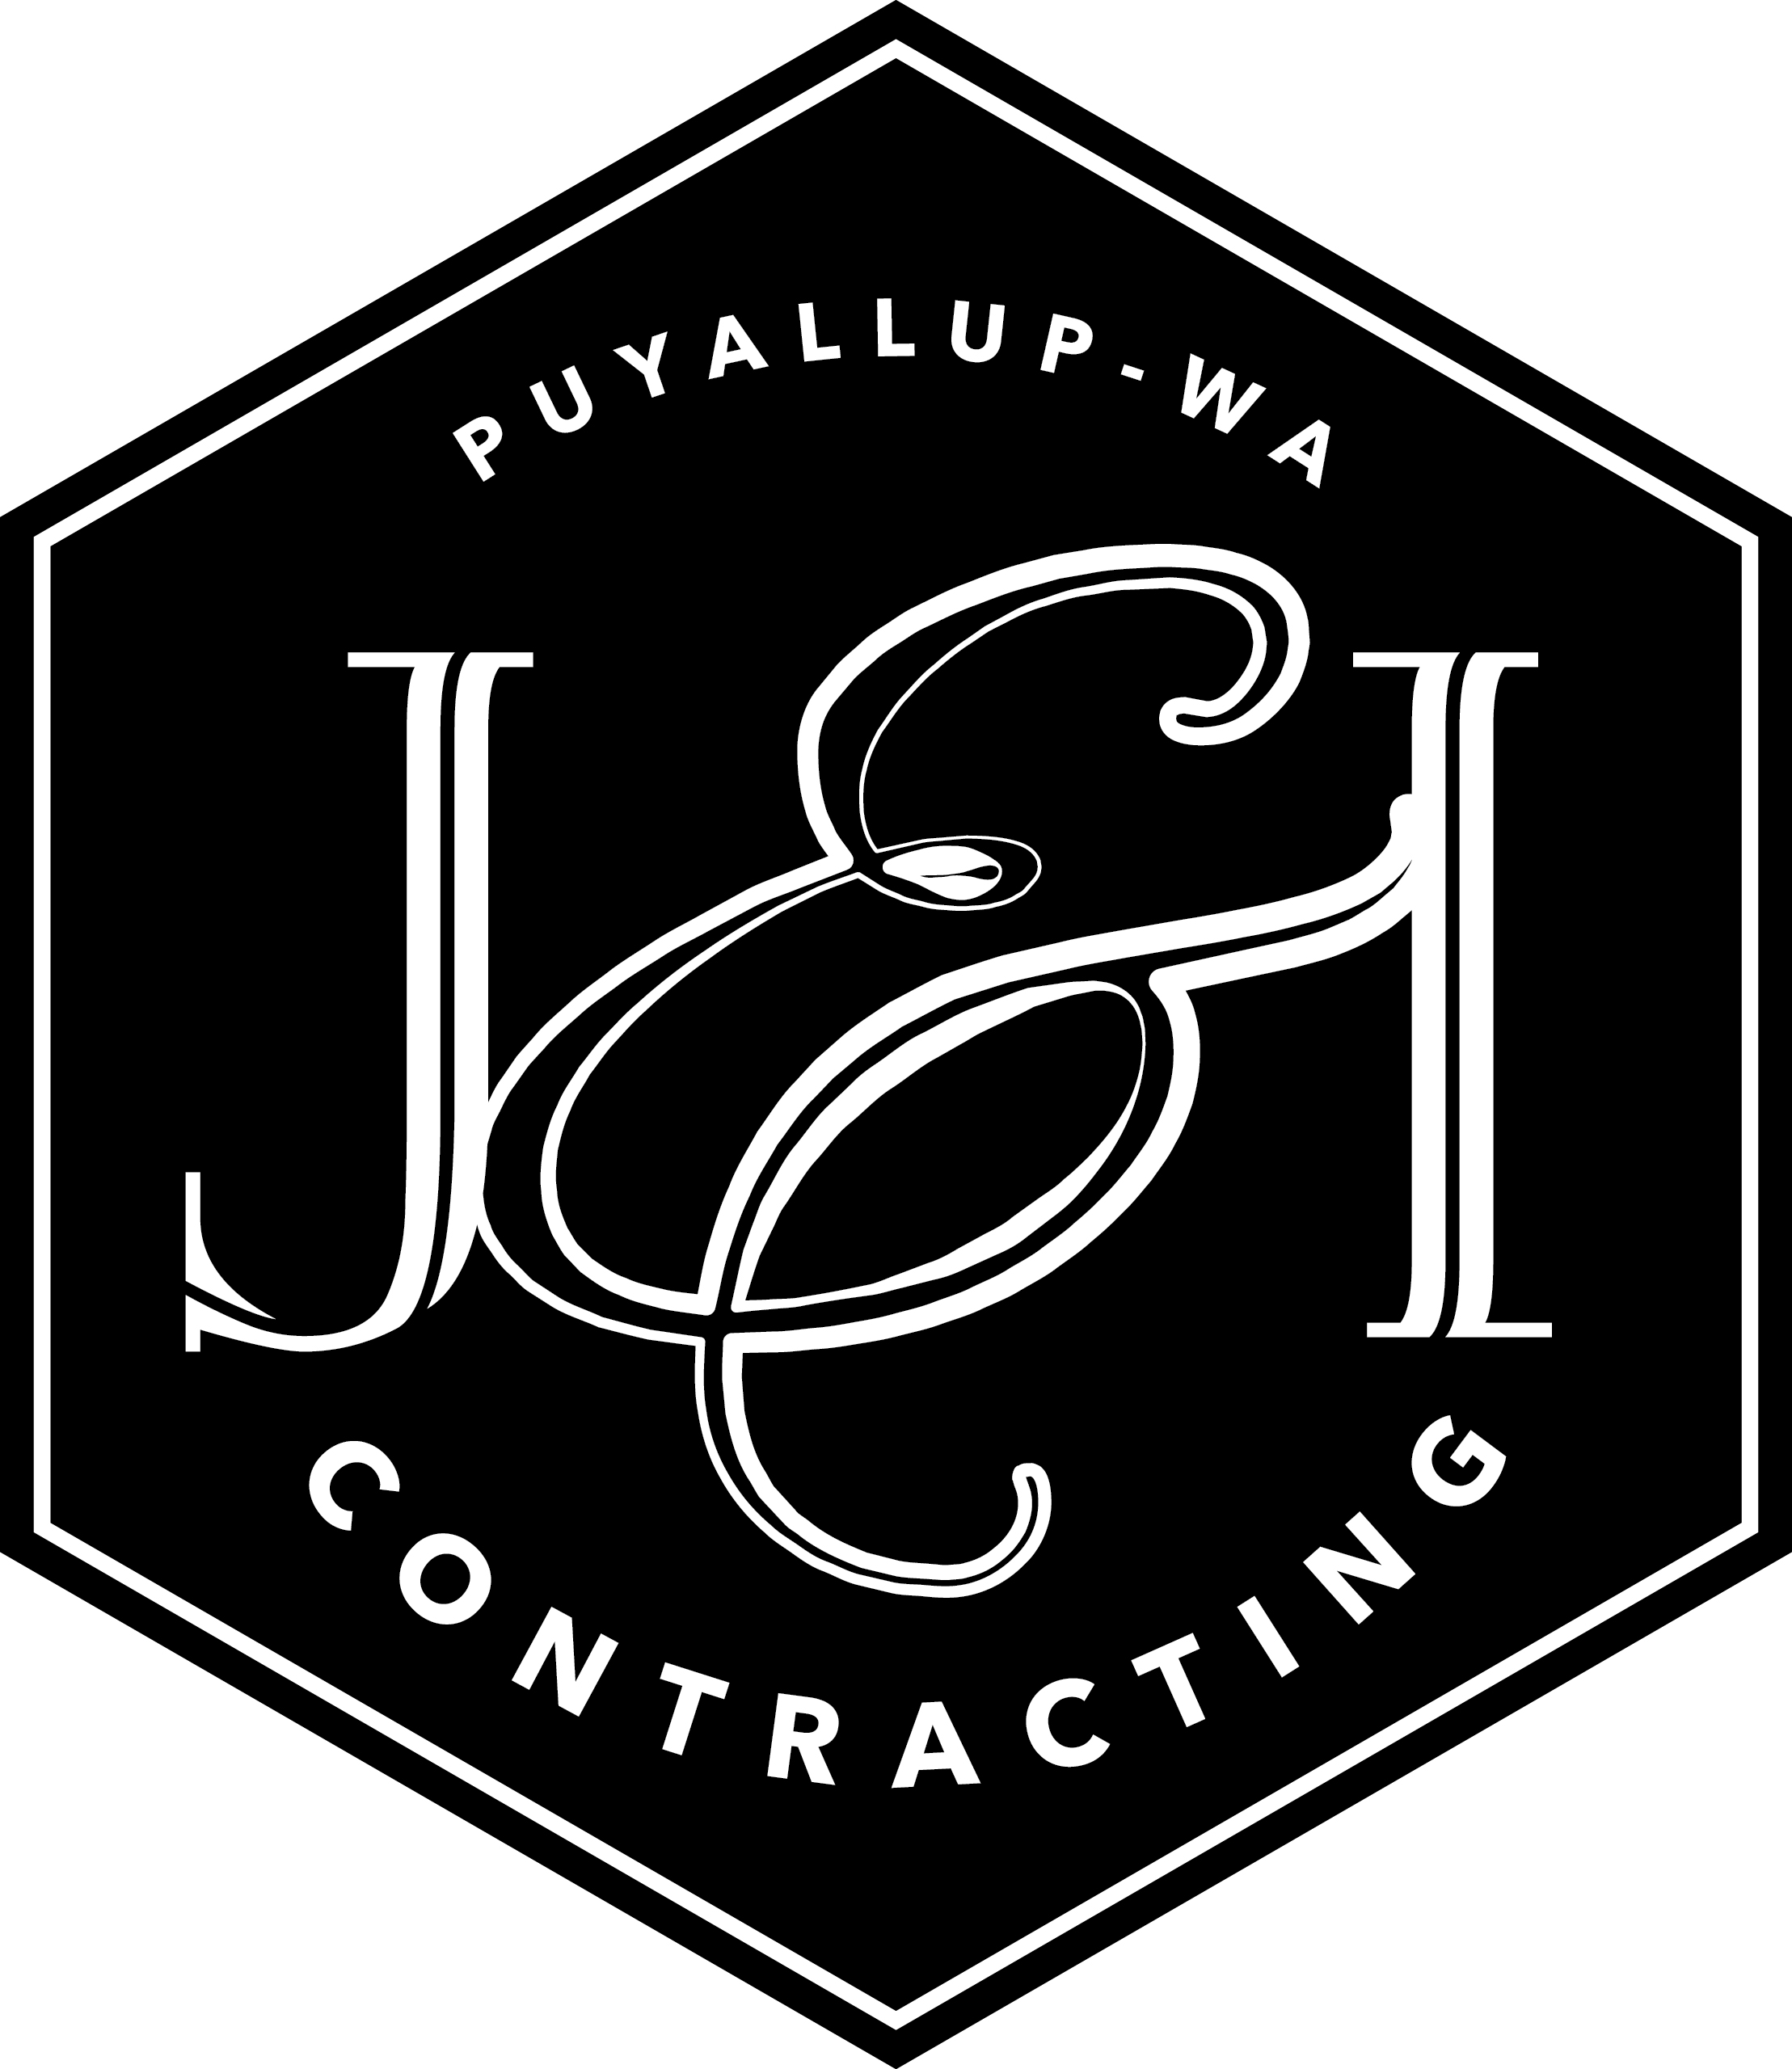 J&I Contracting